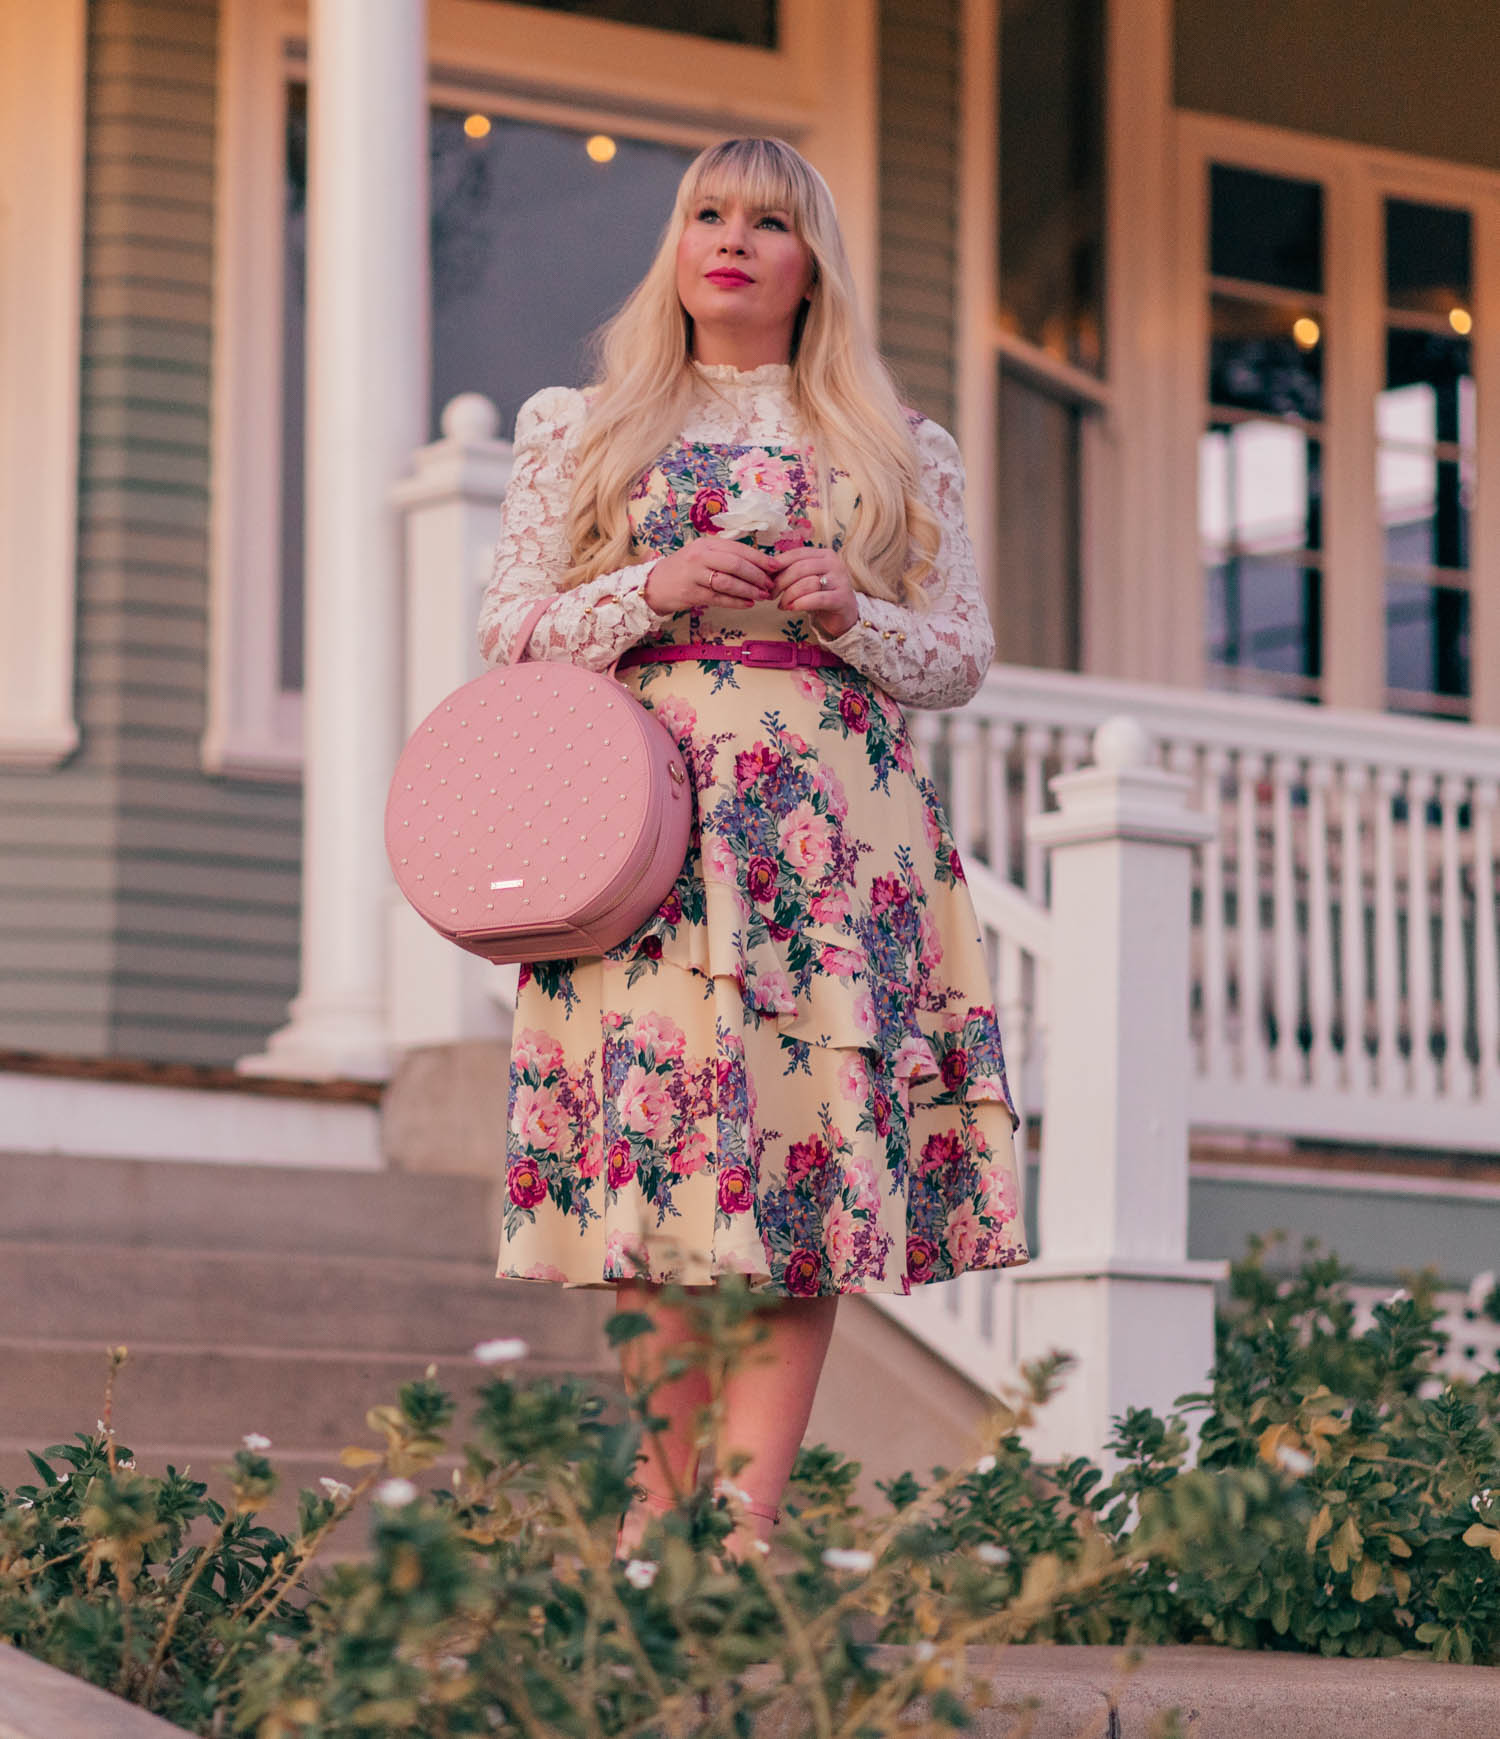 Elizabeth Hugen of Lizzie in Lace wears a yellow floral dress!